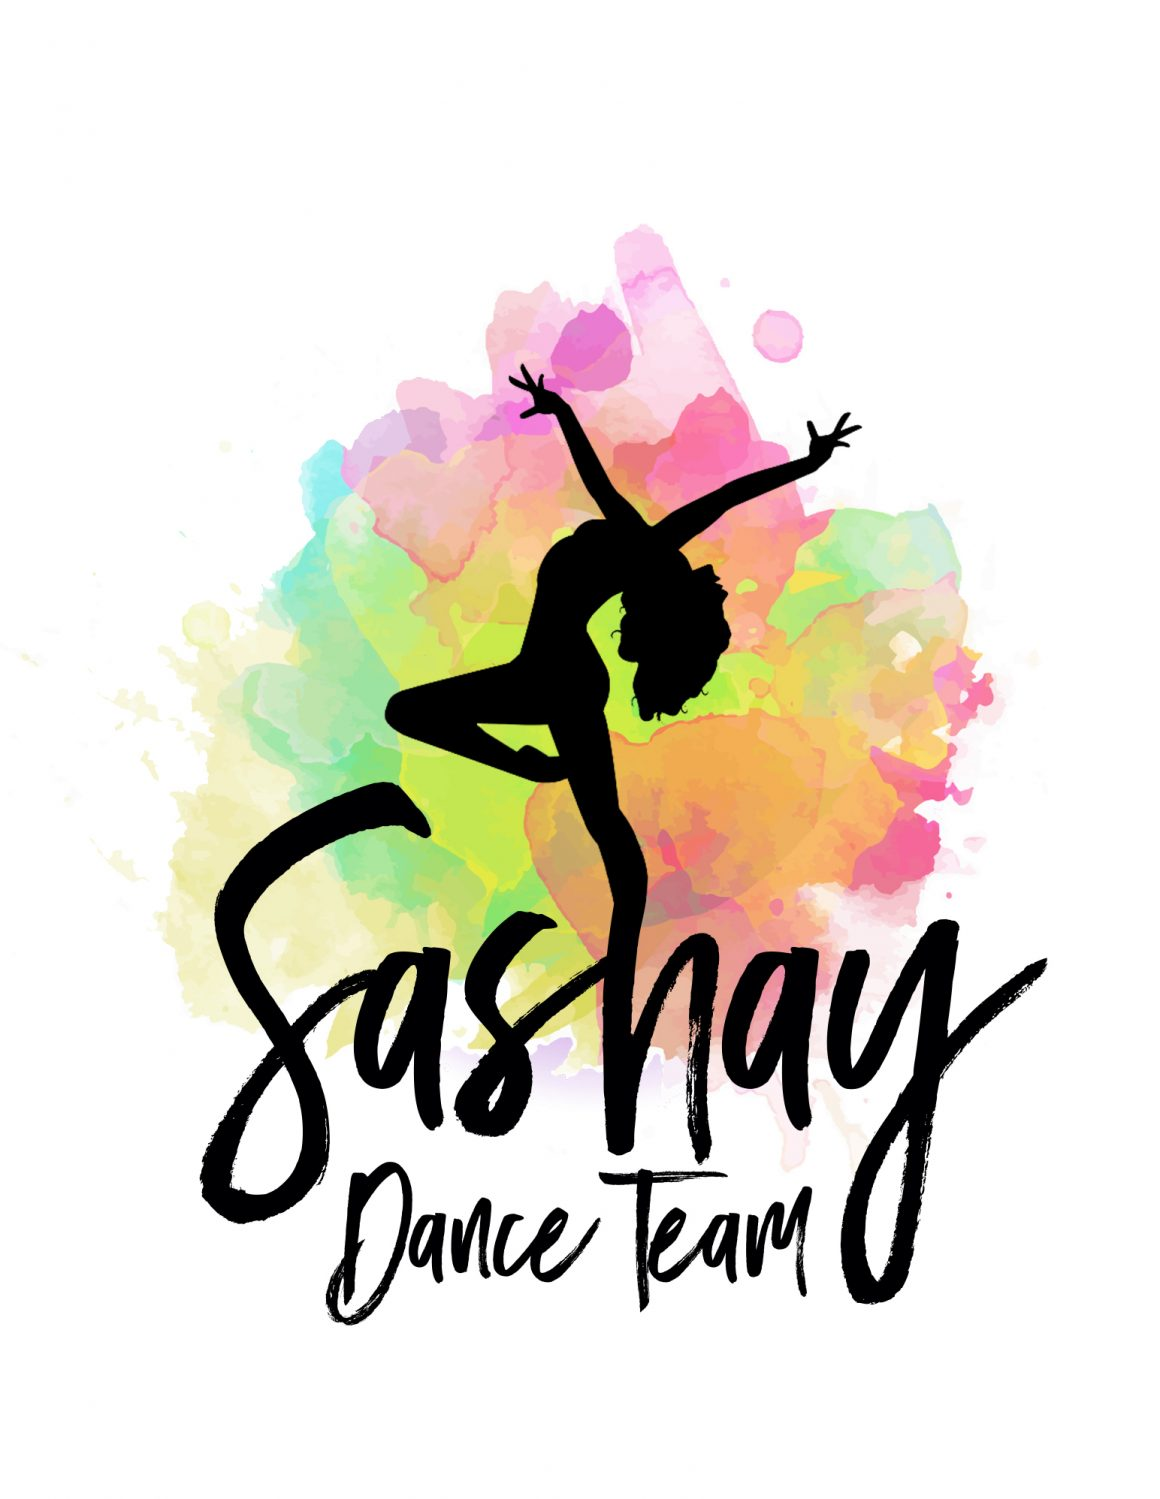 Sashay Dance Team